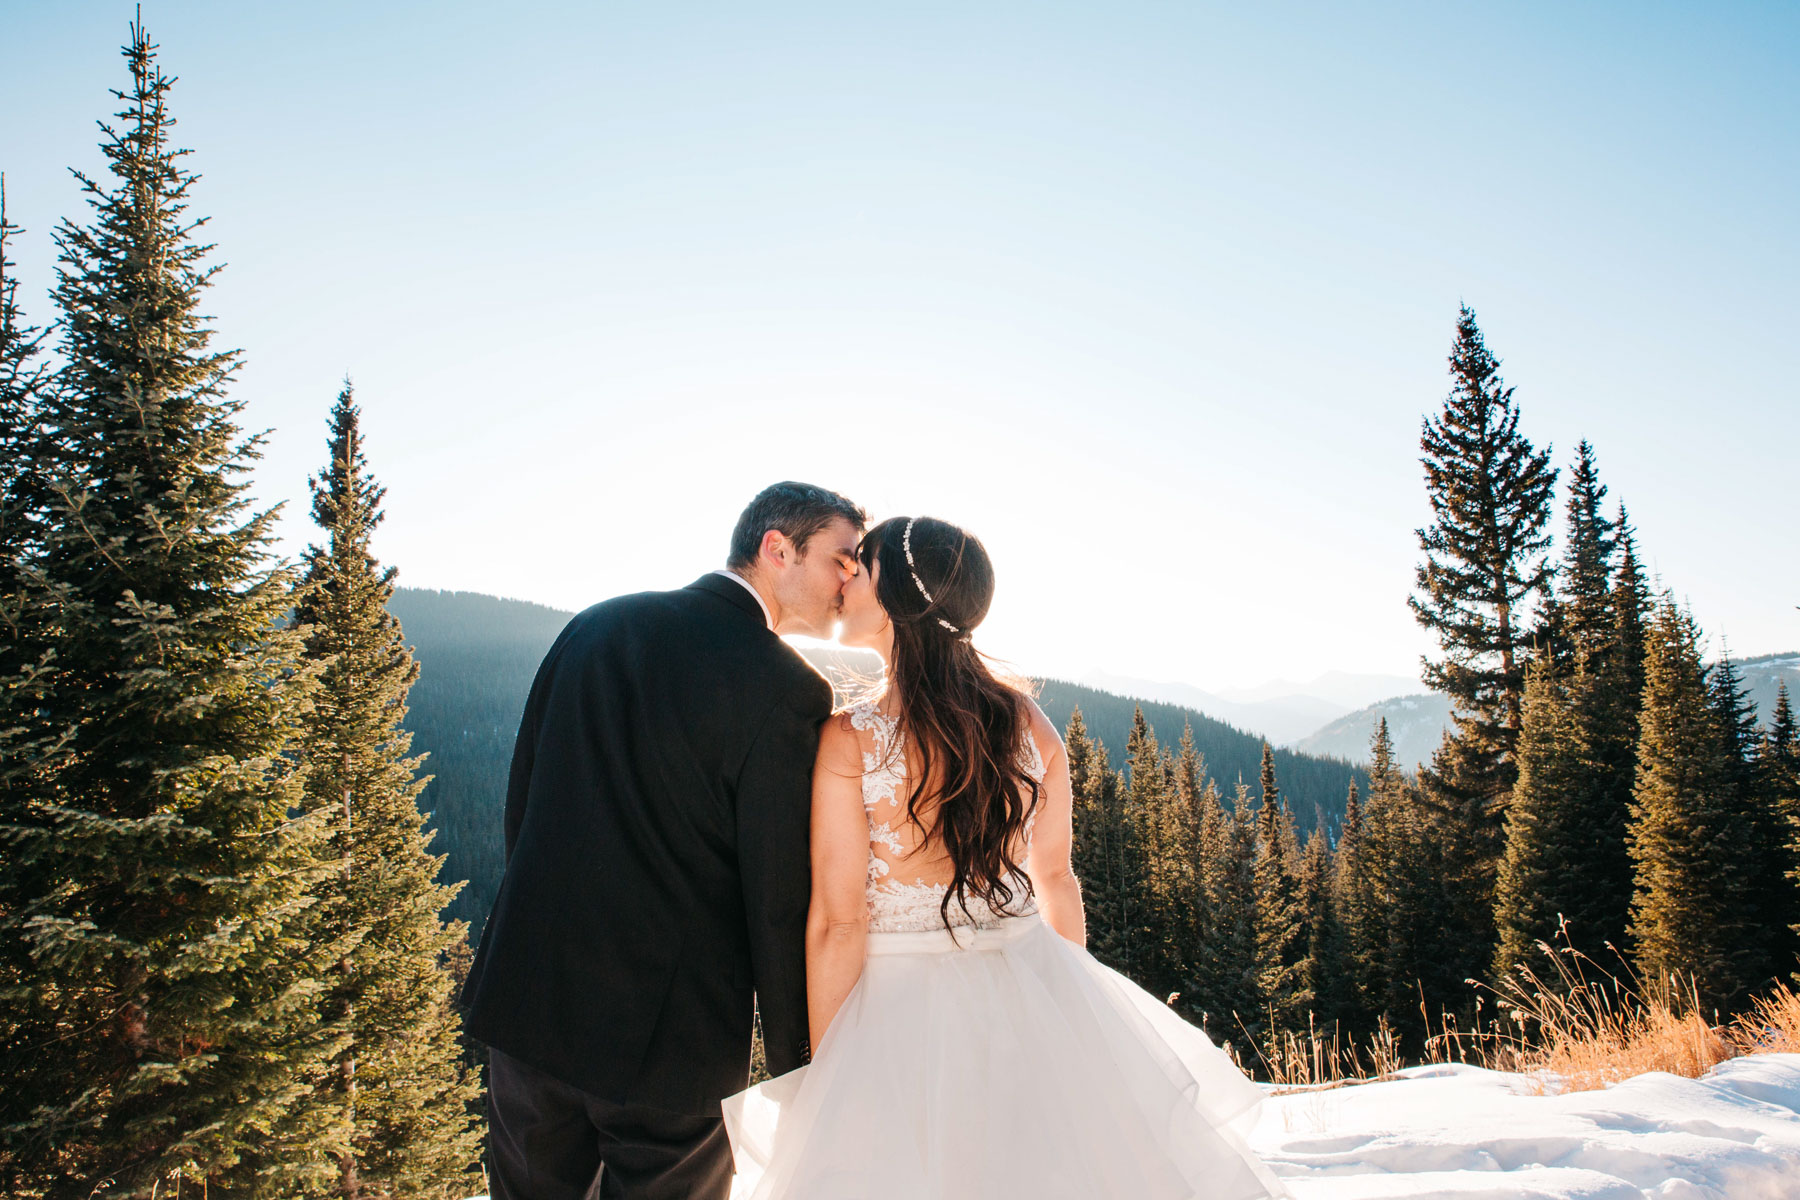 114colorado-mountain-wedding-photographer-denver-colorado-mountain-weddings-intimate-weddings-destination-colorado-rocky-mountain-wedding-photographer_snowmobile-elopement-adventure-elopement-colorado-elopement-photographer-stylzed-shoot-dec2017-910.jpg